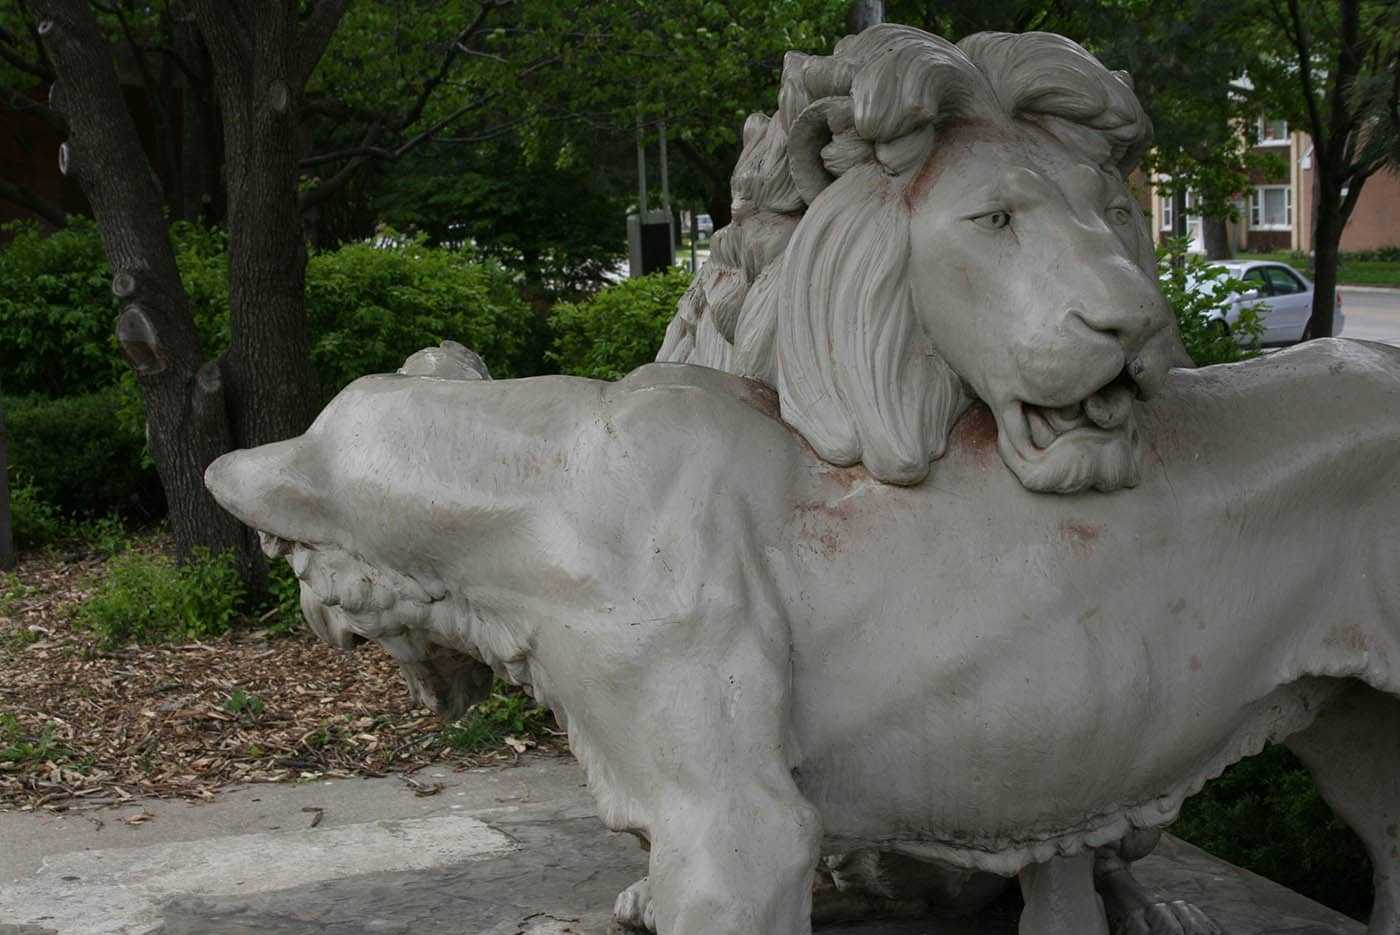 Lion Zoo Statues at the Zoo Stop in Brookfield, Illinois